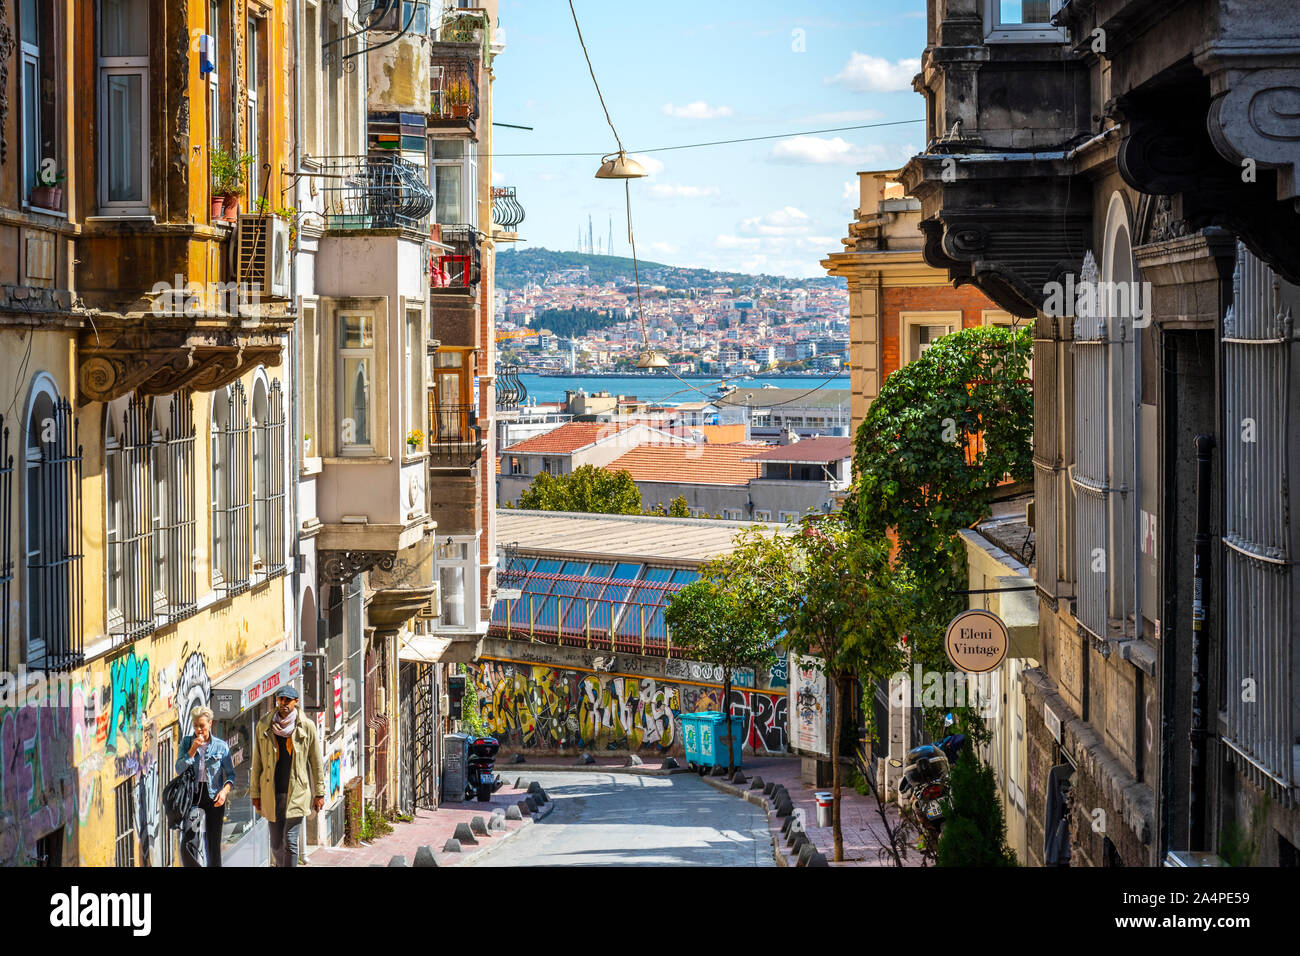 A couple walks the hilly Galata Karakoy district with the Bosphorus River, Asia and Golden Horn in the distance in Istanbul, Turkey. Stock Photo